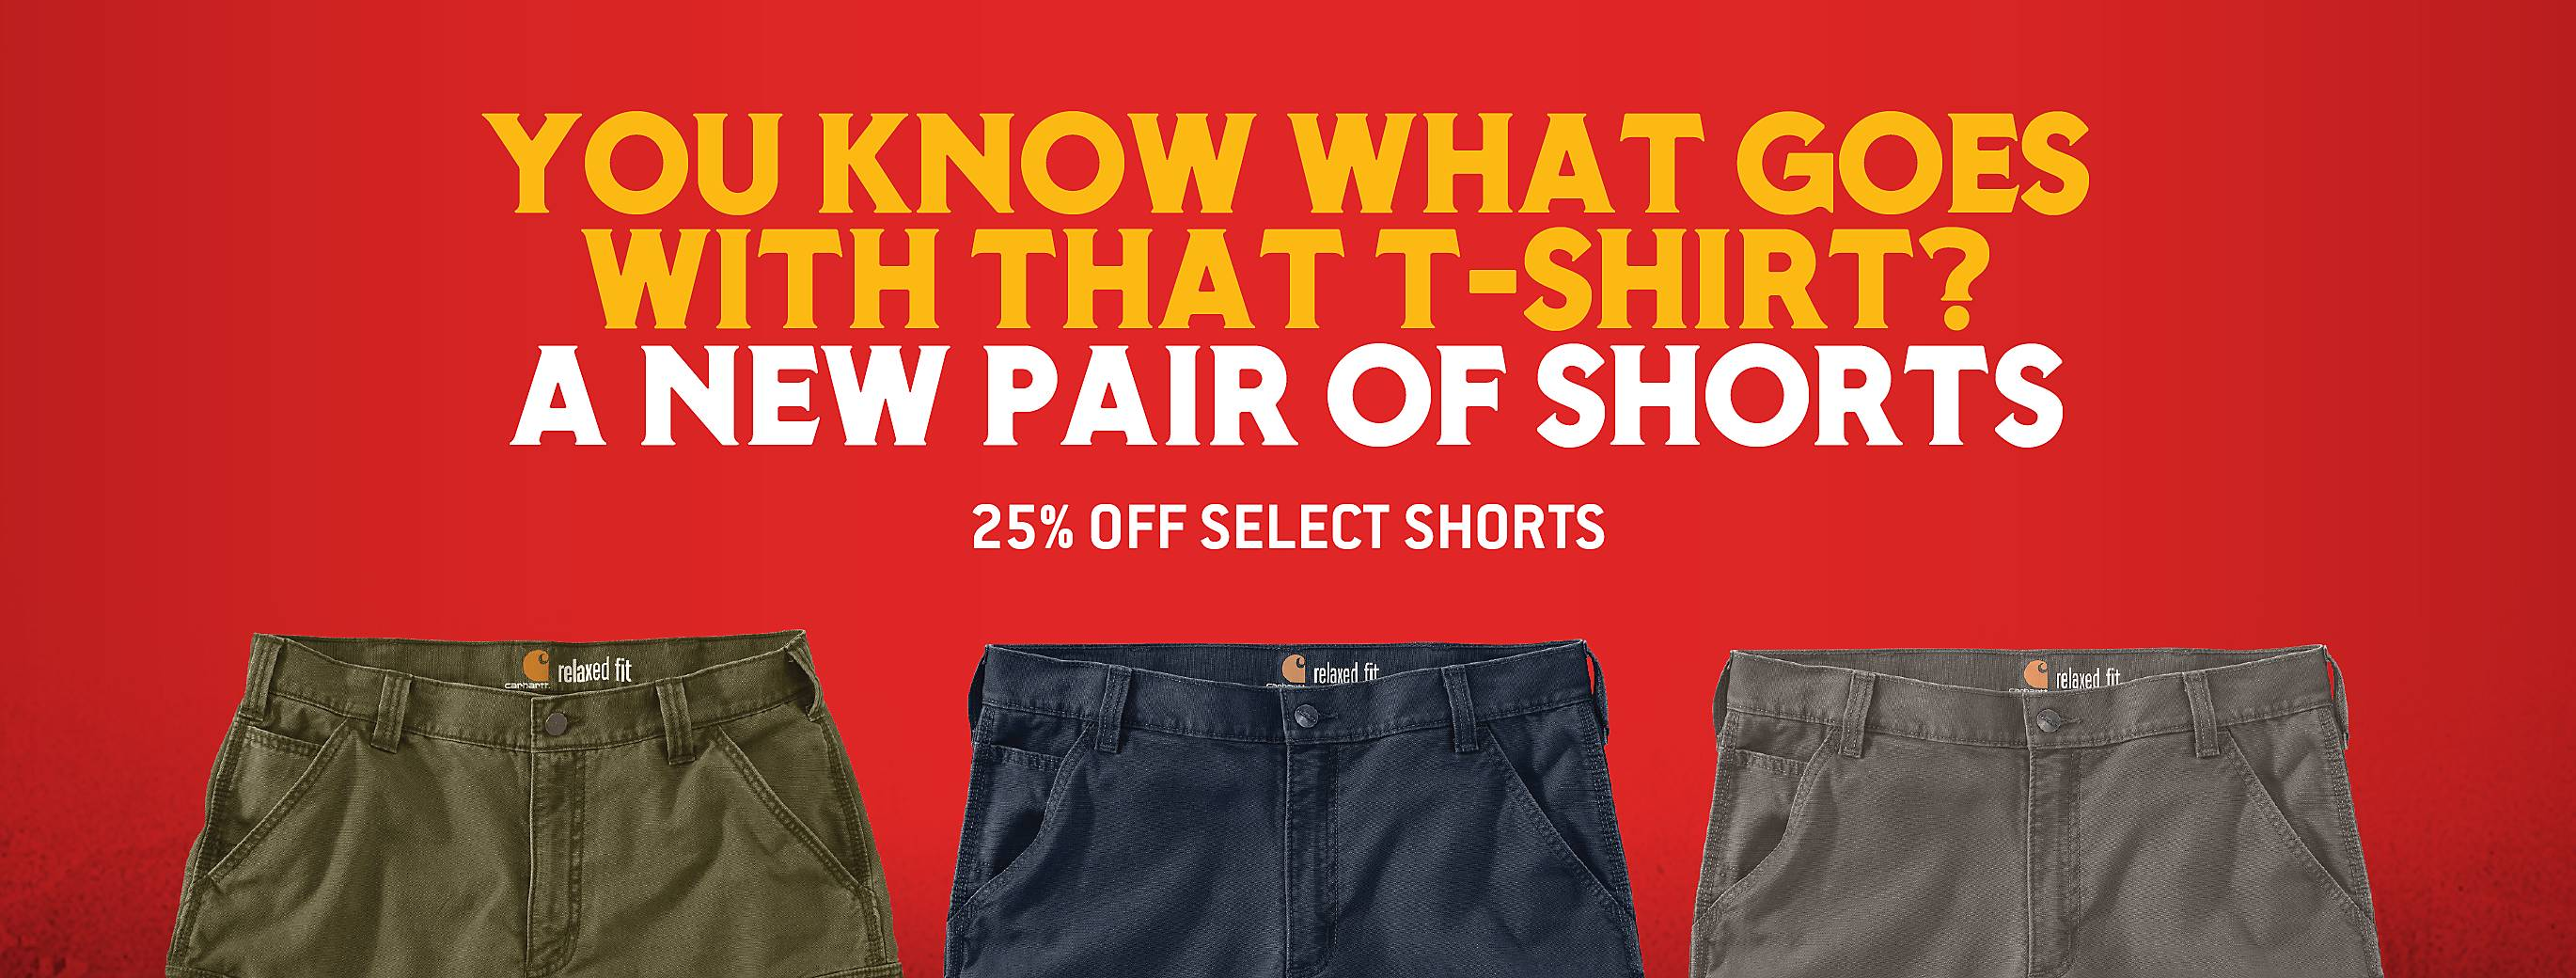 You know what goes with that t-shirt? A new pair of shorts, 25 percent off select shorts